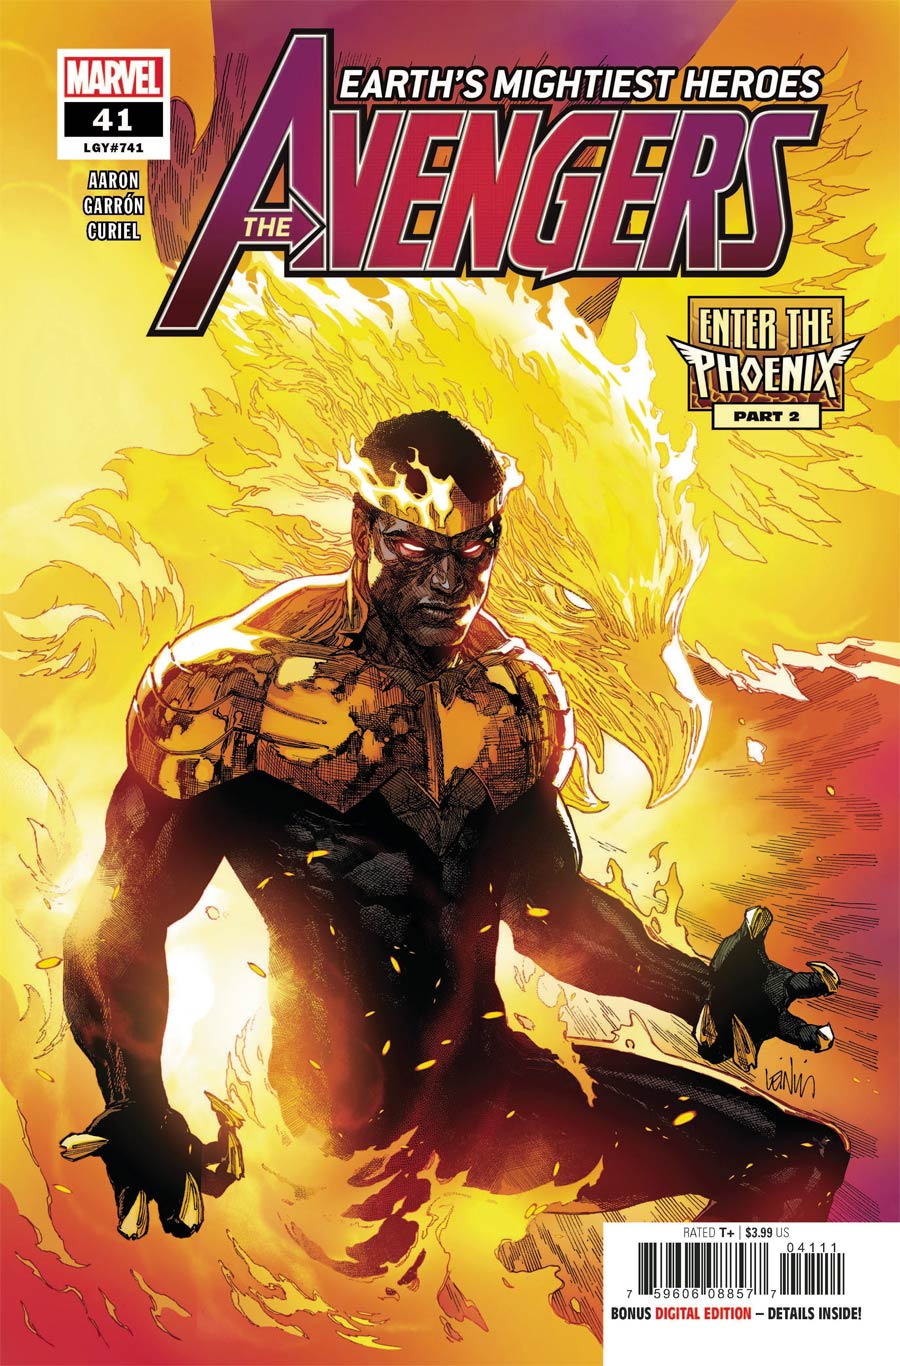 Avengers Vol 7 #41 Cover A Regular Leinil Francis Yu Cover (Limit 1 Per Customer)